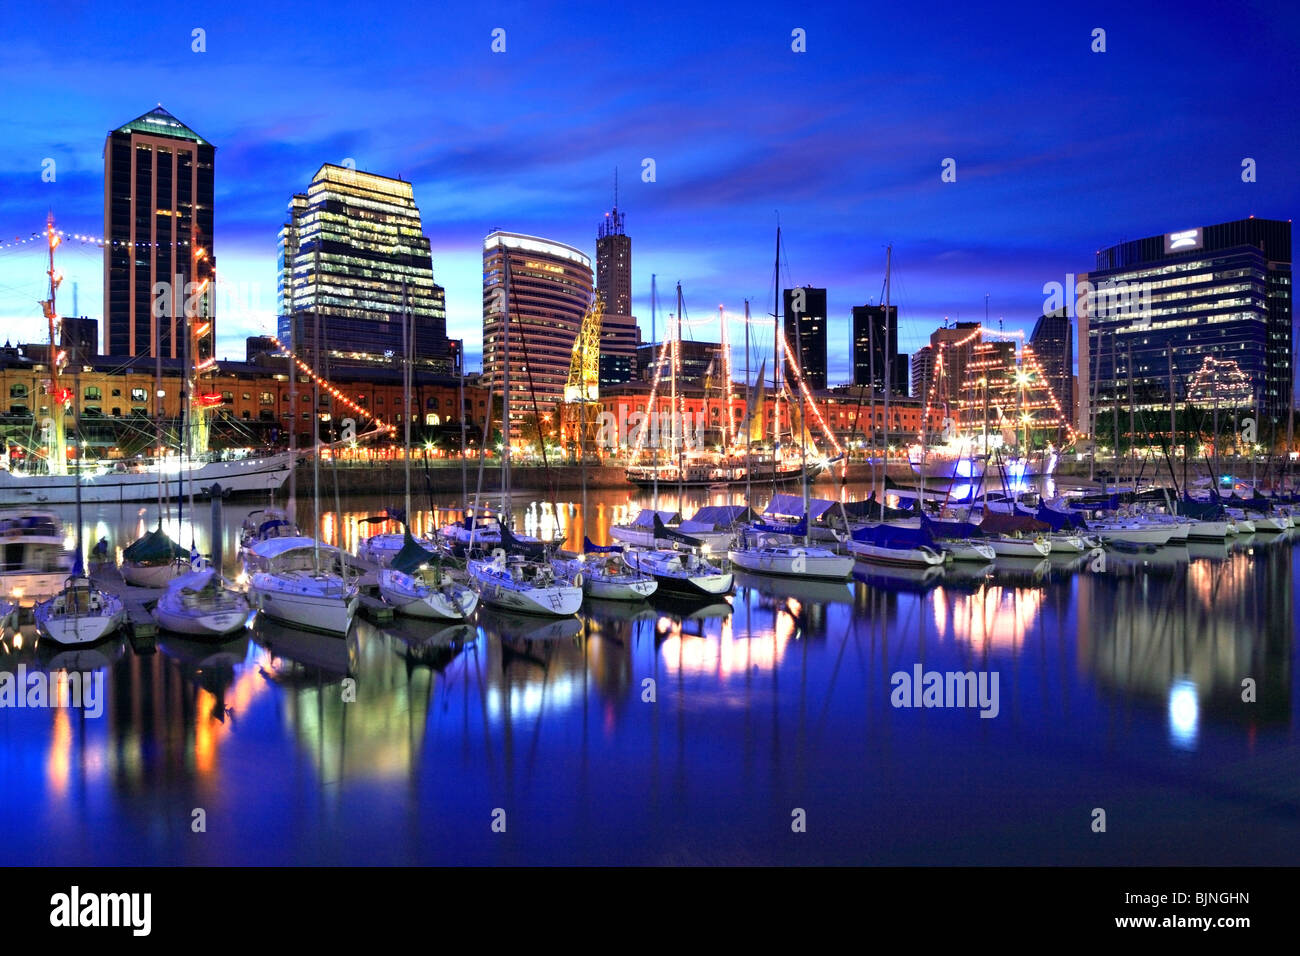 perspective view of Puerto Madero yatch club view at twilight with frigates. Buenos Aires, Argentina, south America - Stock Image